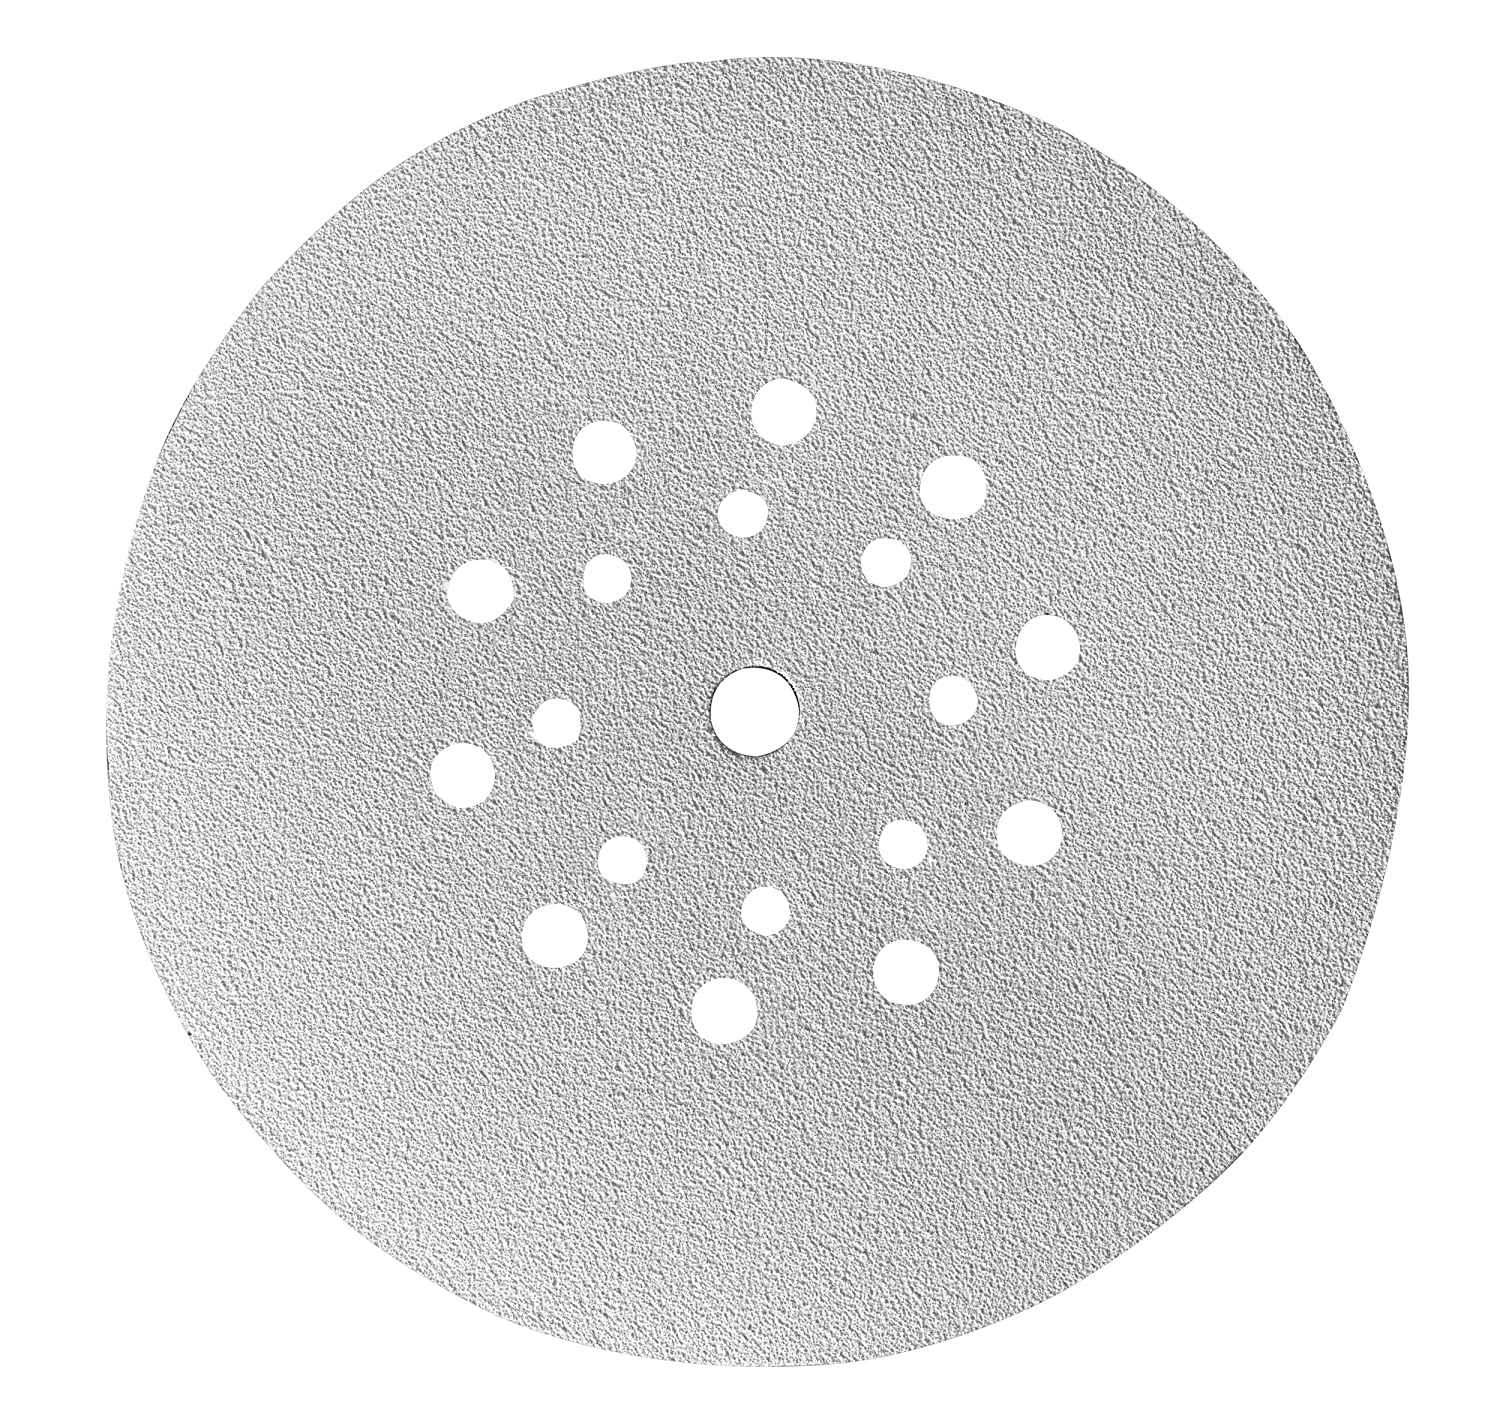 Stearate Coated Aluminium Oxide Sanding Discs Silver KWB Quick Stick Set /Ø225/ Strong Wood /& Polish 492108 0W for Einhell Drywall Sander TC DW 225 0V